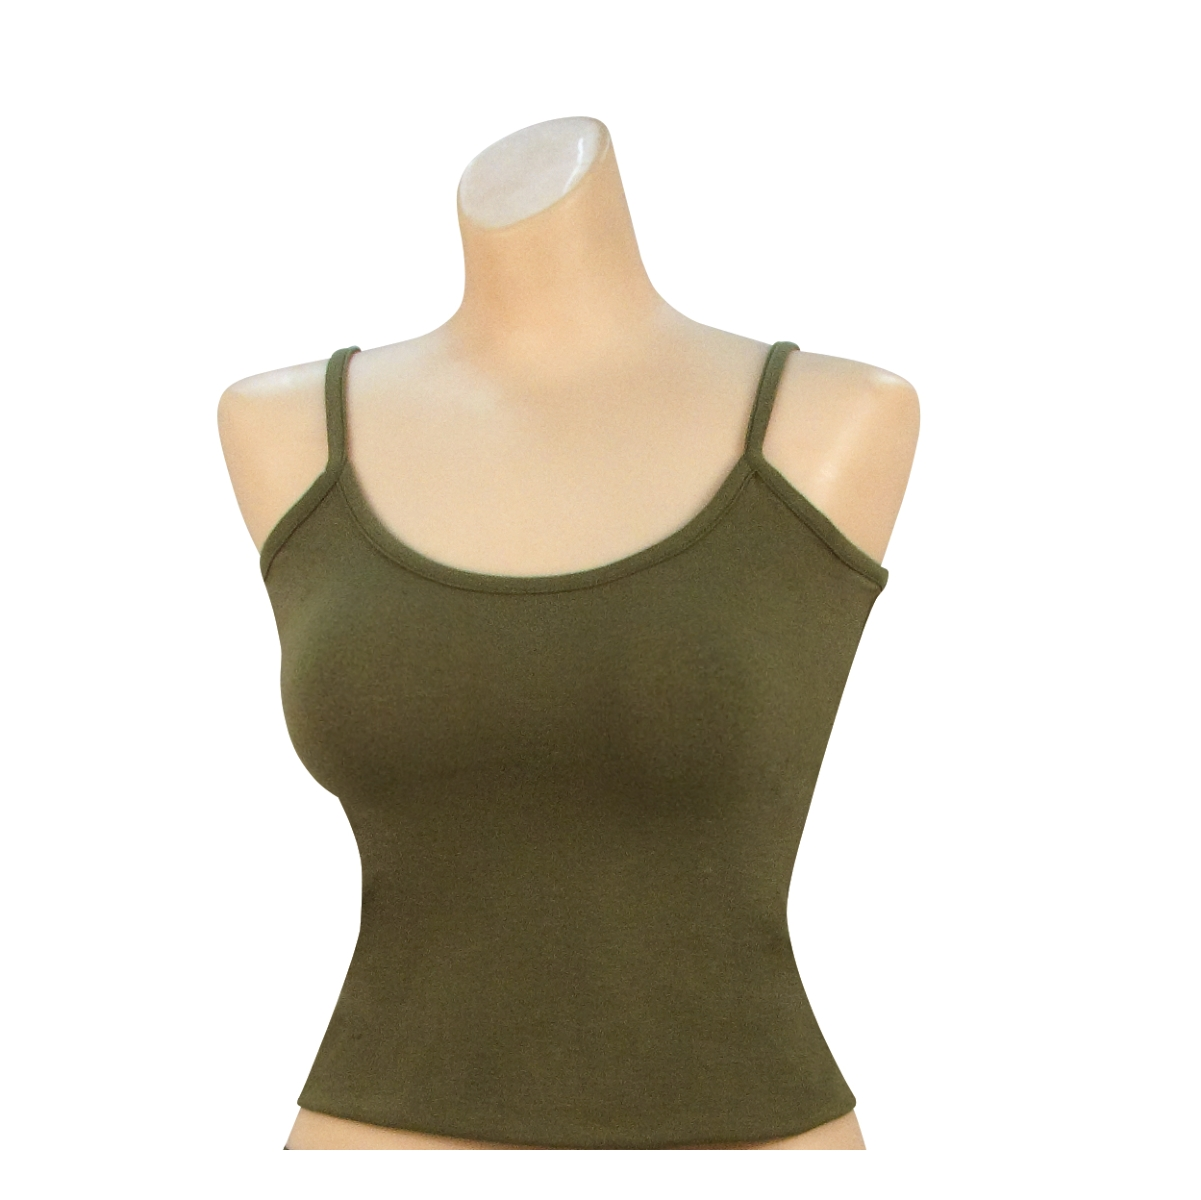 Rothco Women's Olive Drab Casual Tank Top, Camisole at Sears.com